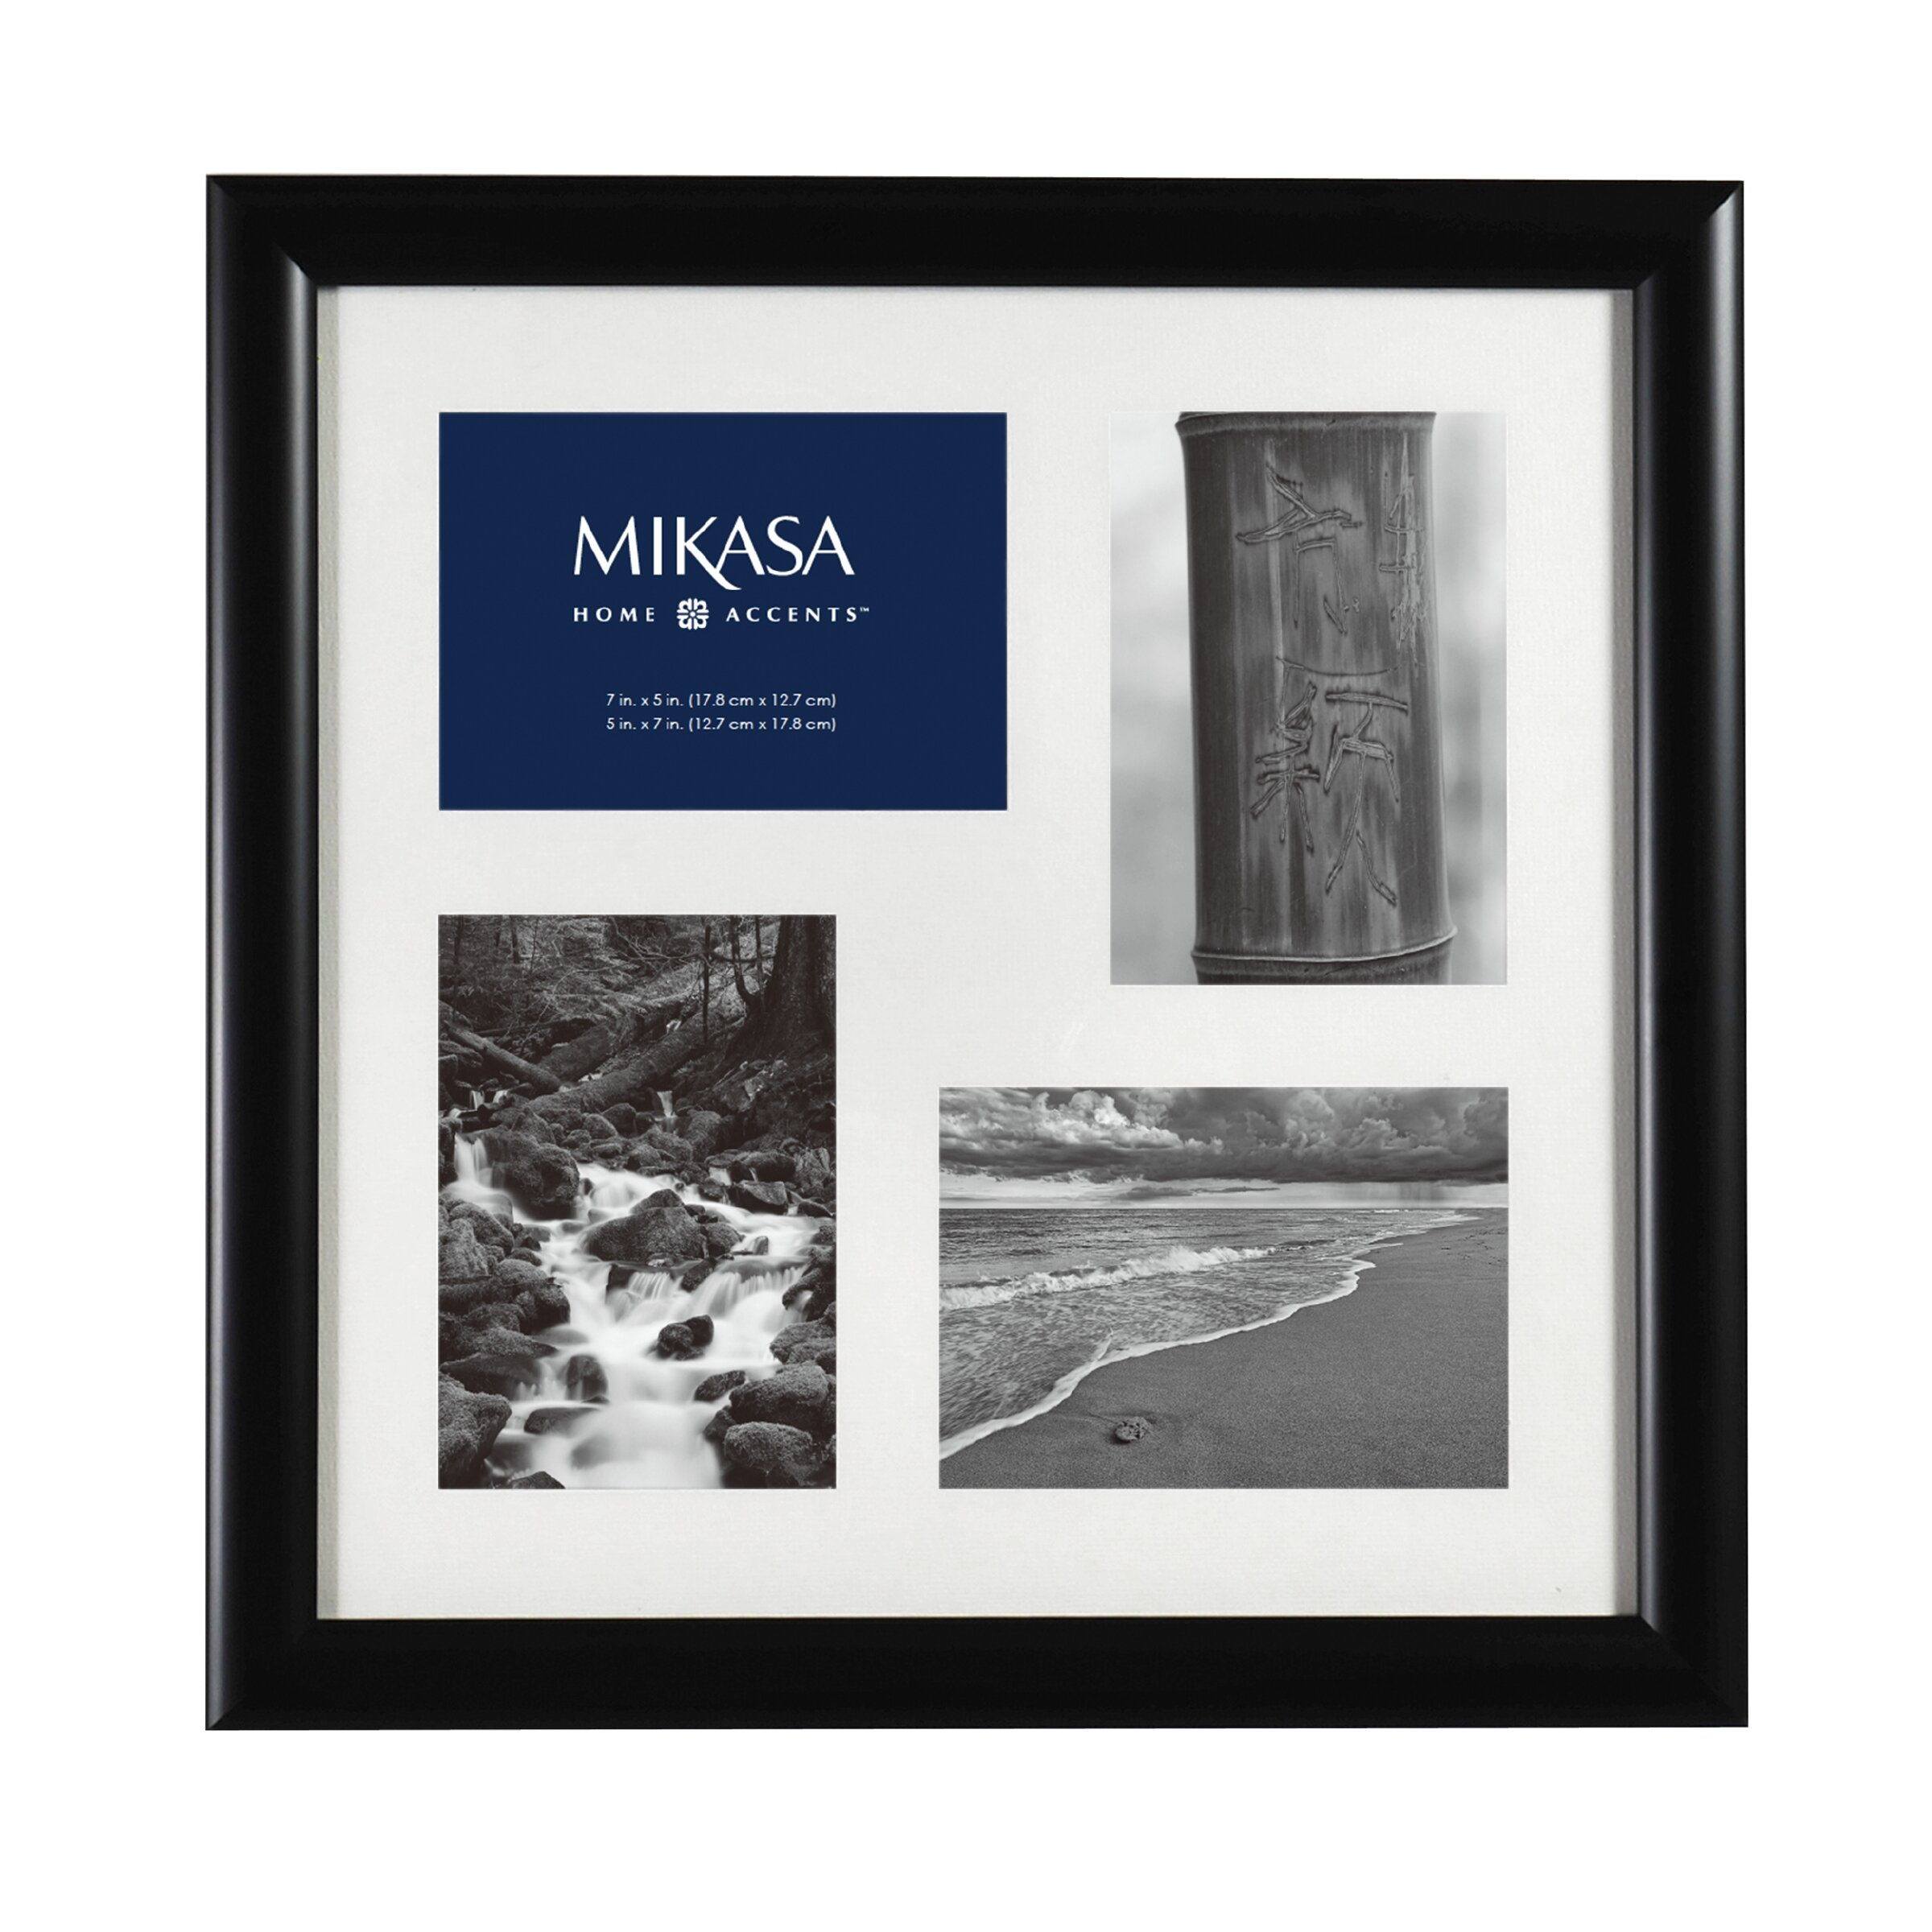 Mikasa 4-Opening Shadowbox Collage | Wayfair